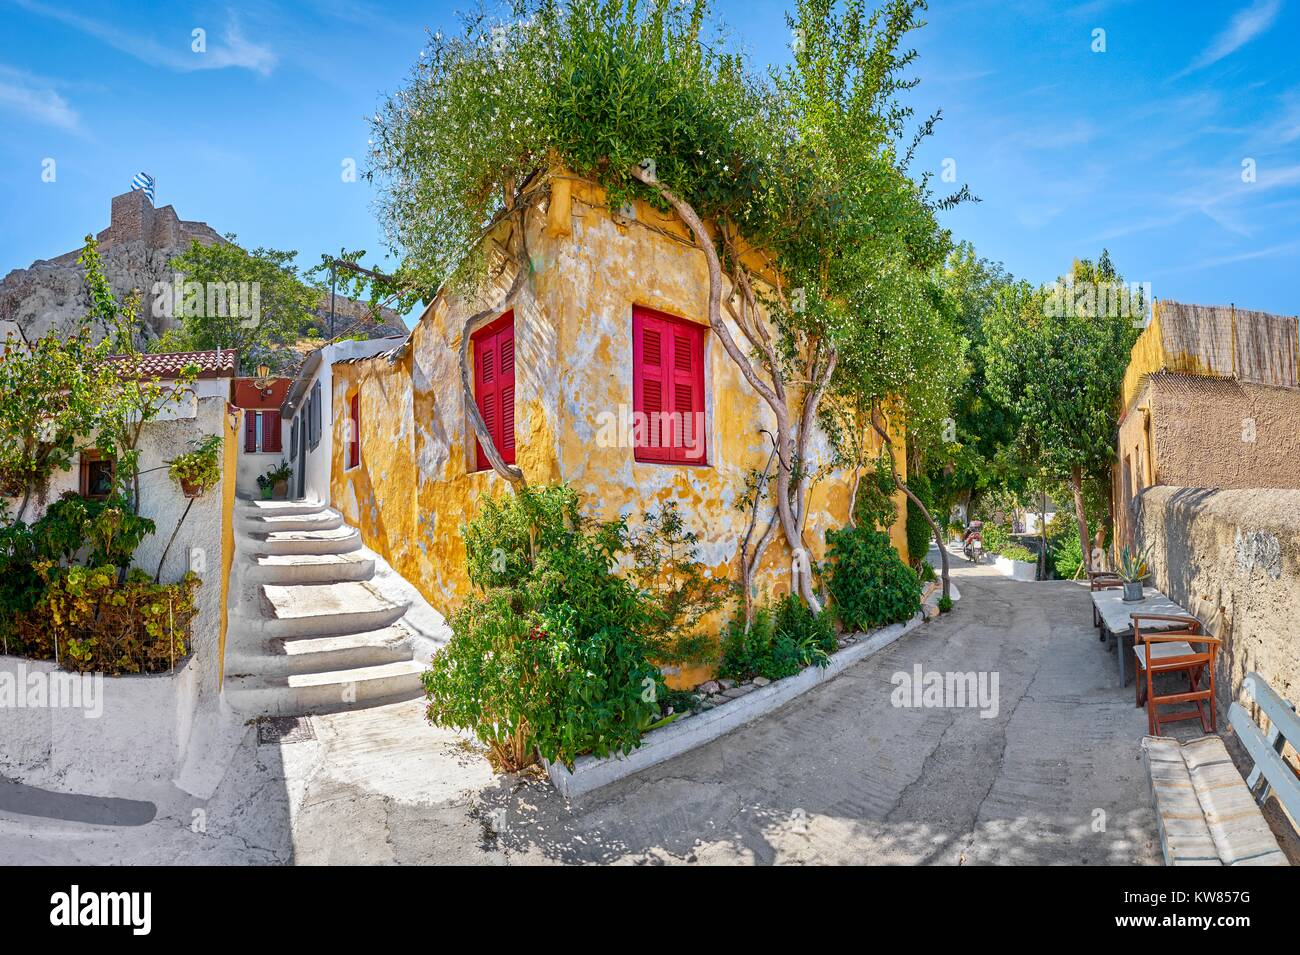 Anafiotika quarter under the Acropolis close to Plaka, Athens, Greece - Stock Image